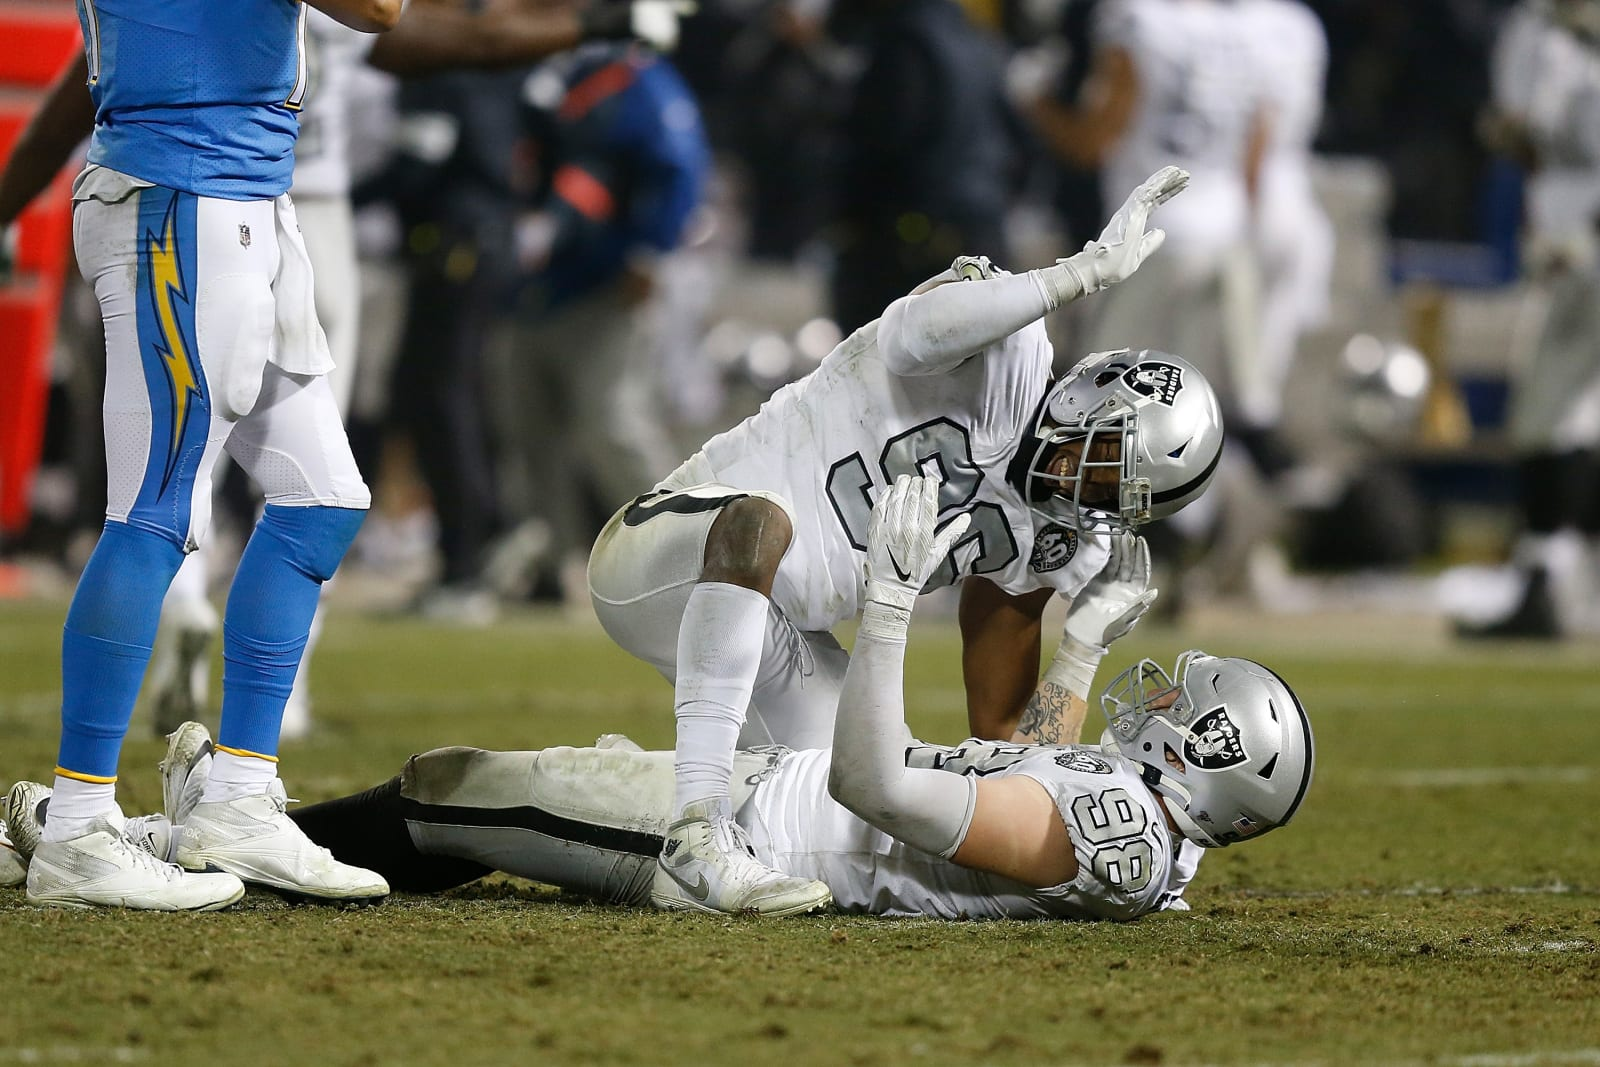 Las Vegas Raiders Year 2 Expectations For Clelin Ferrell